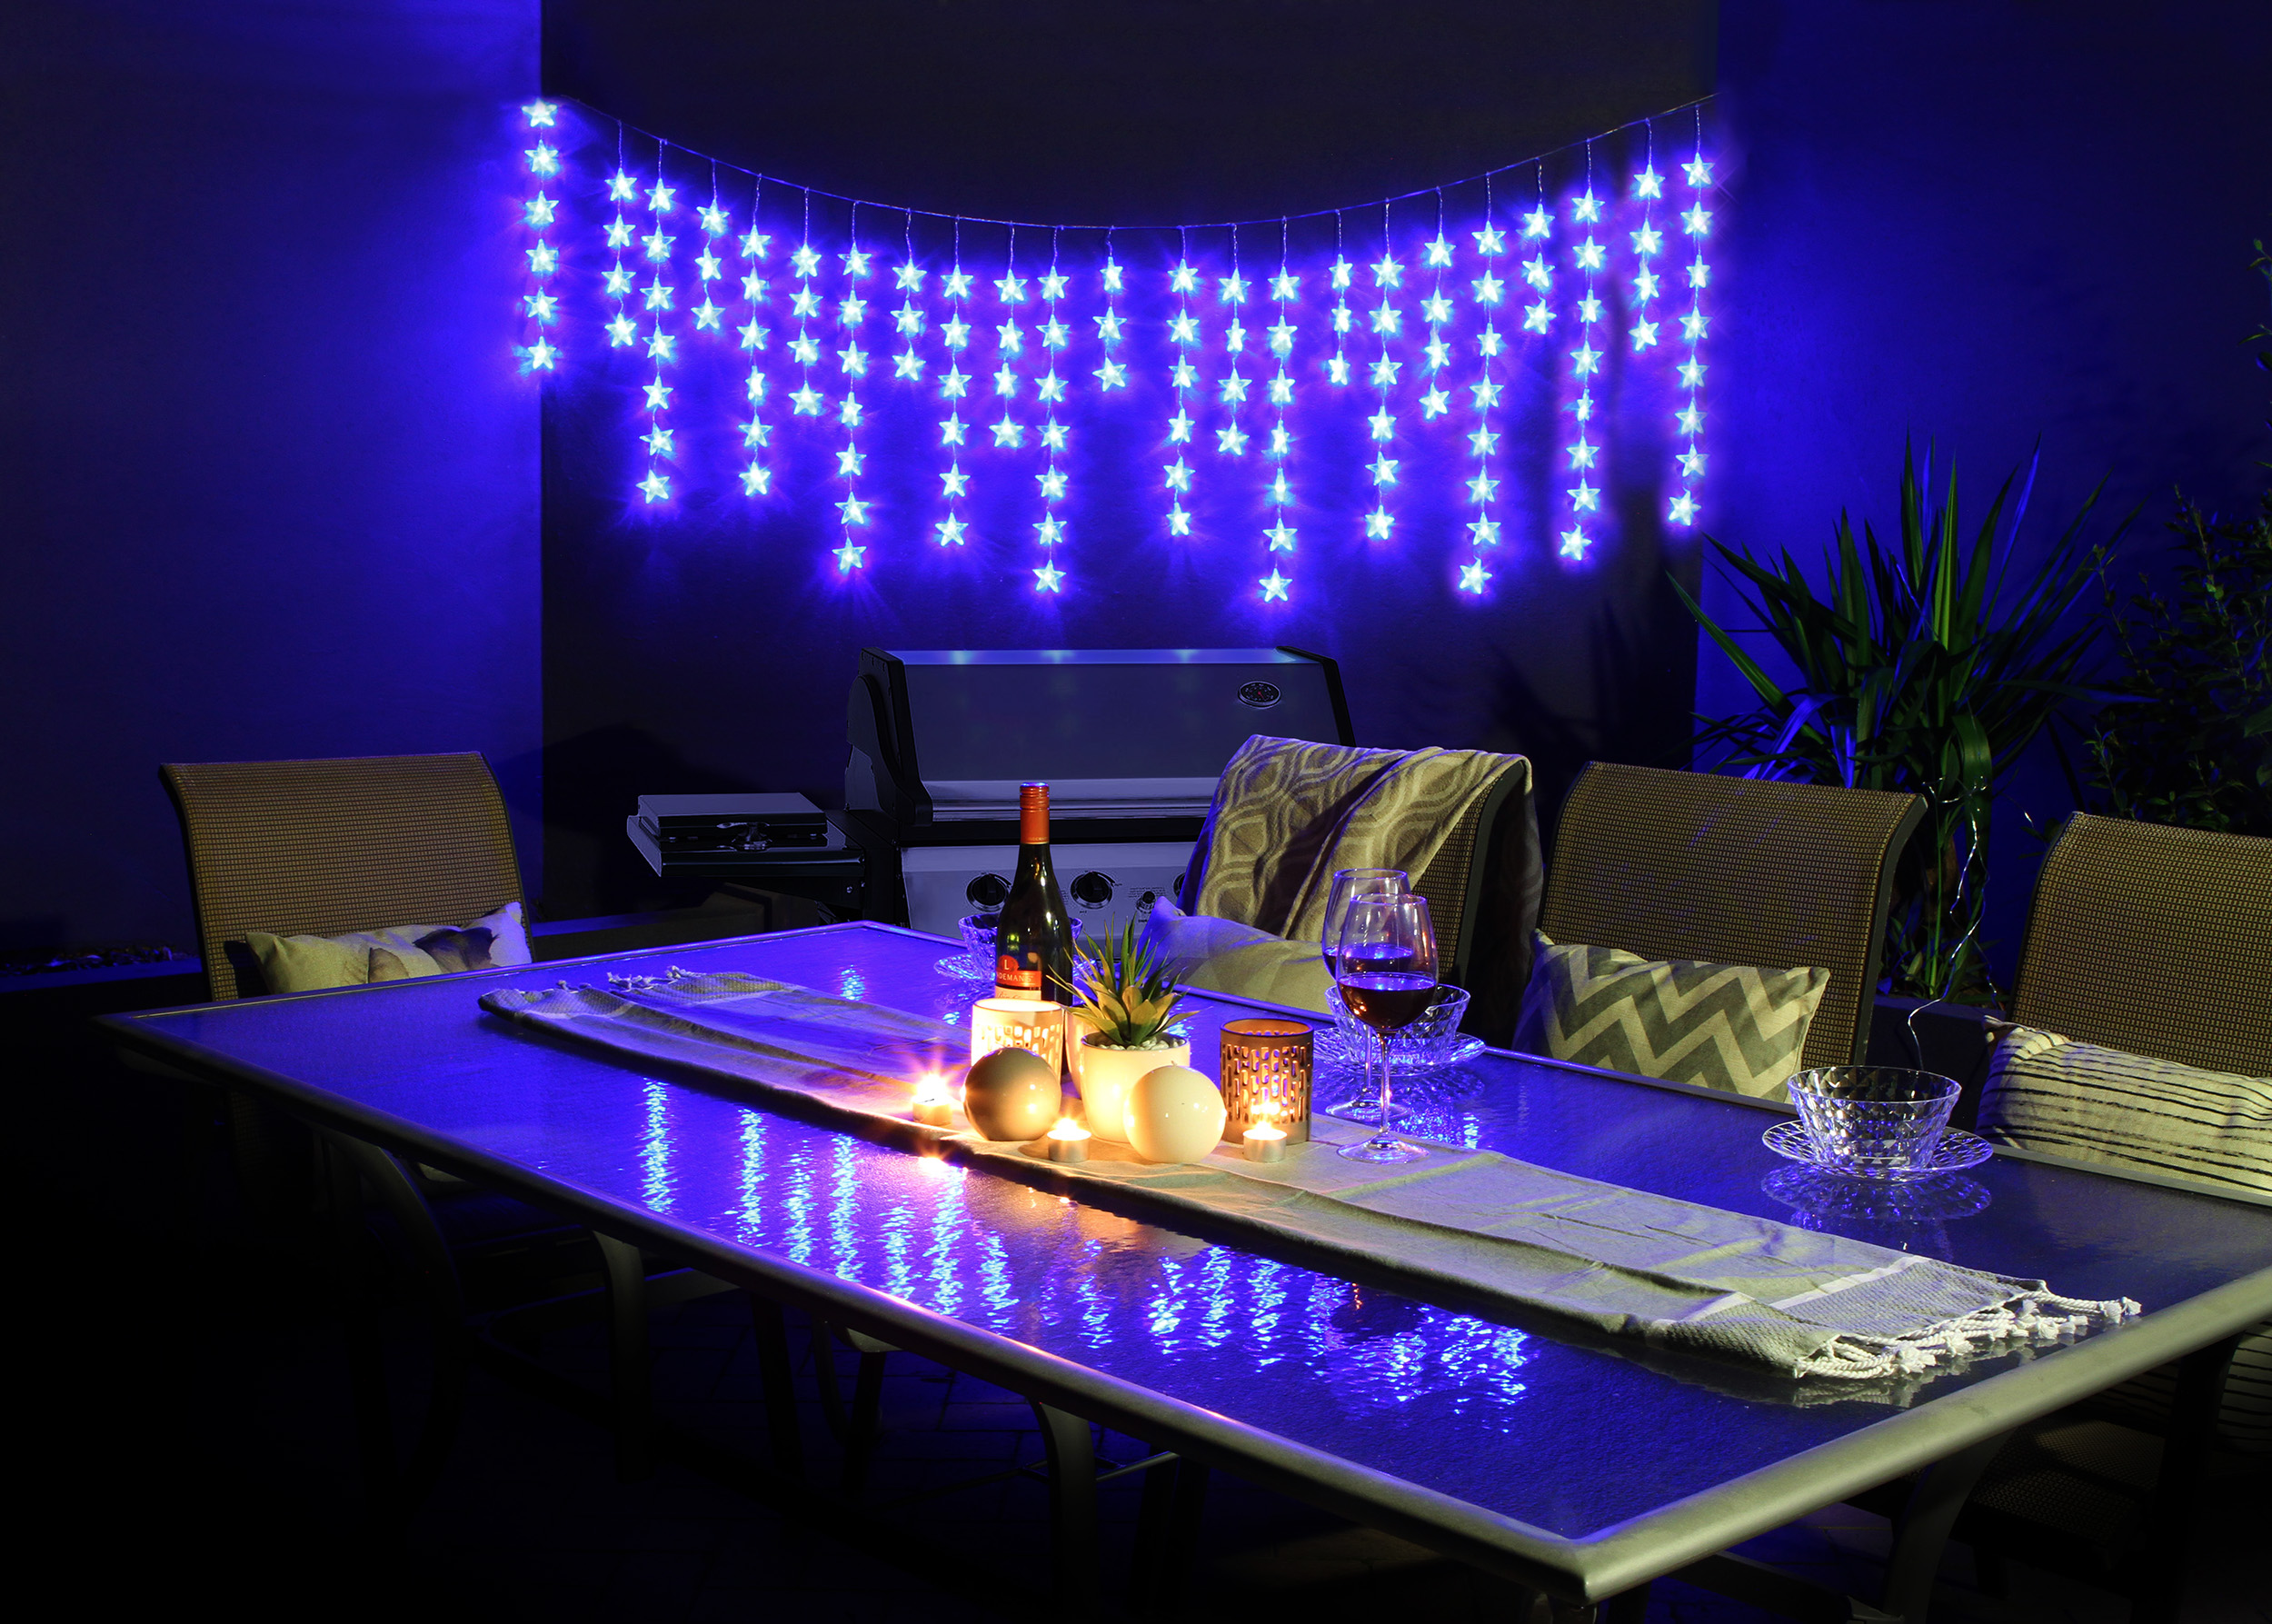 Blue Star String Lights : 100 LED String Lights Blue Star Icicles Light Party Christmas Icicle 7m eBay